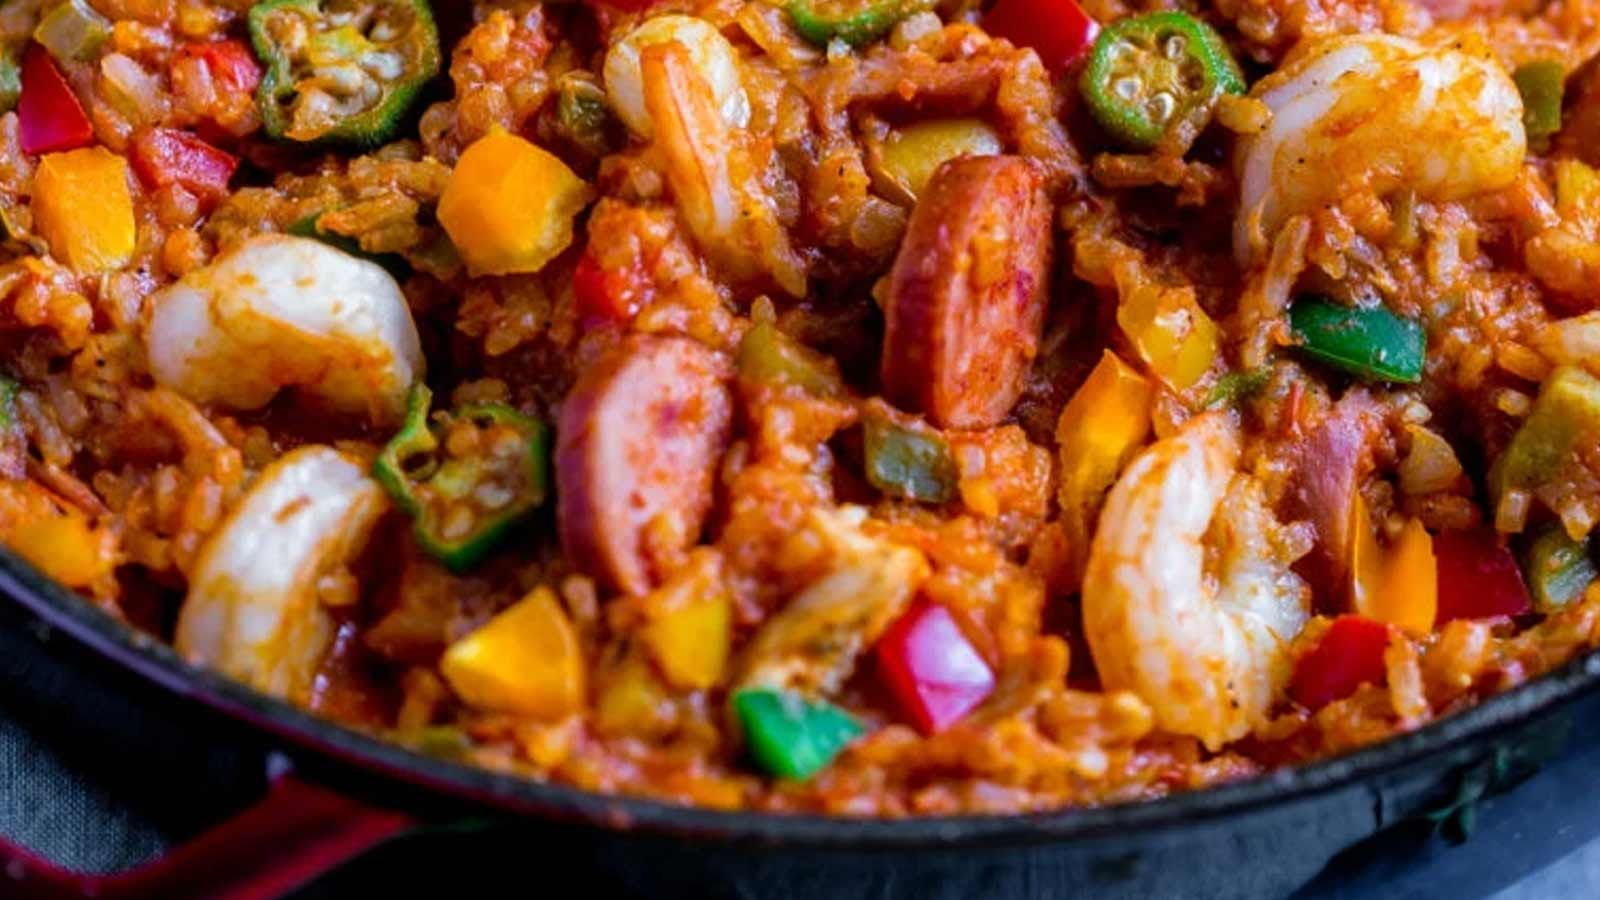 A serving of New Orleans Jambalaya on a plate.